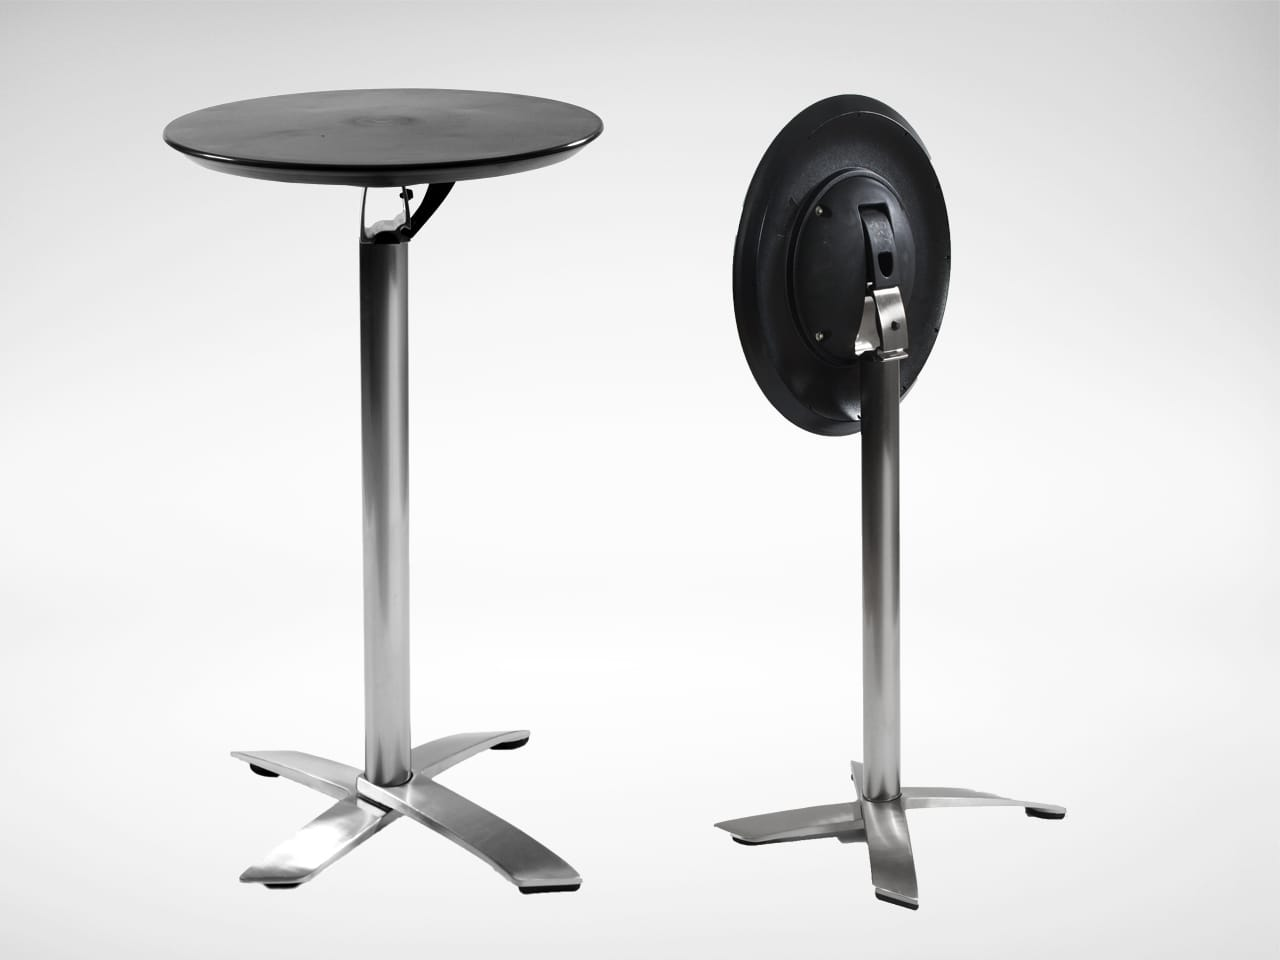 alton folding high table round 600 comfort design the chair table people. Black Bedroom Furniture Sets. Home Design Ideas